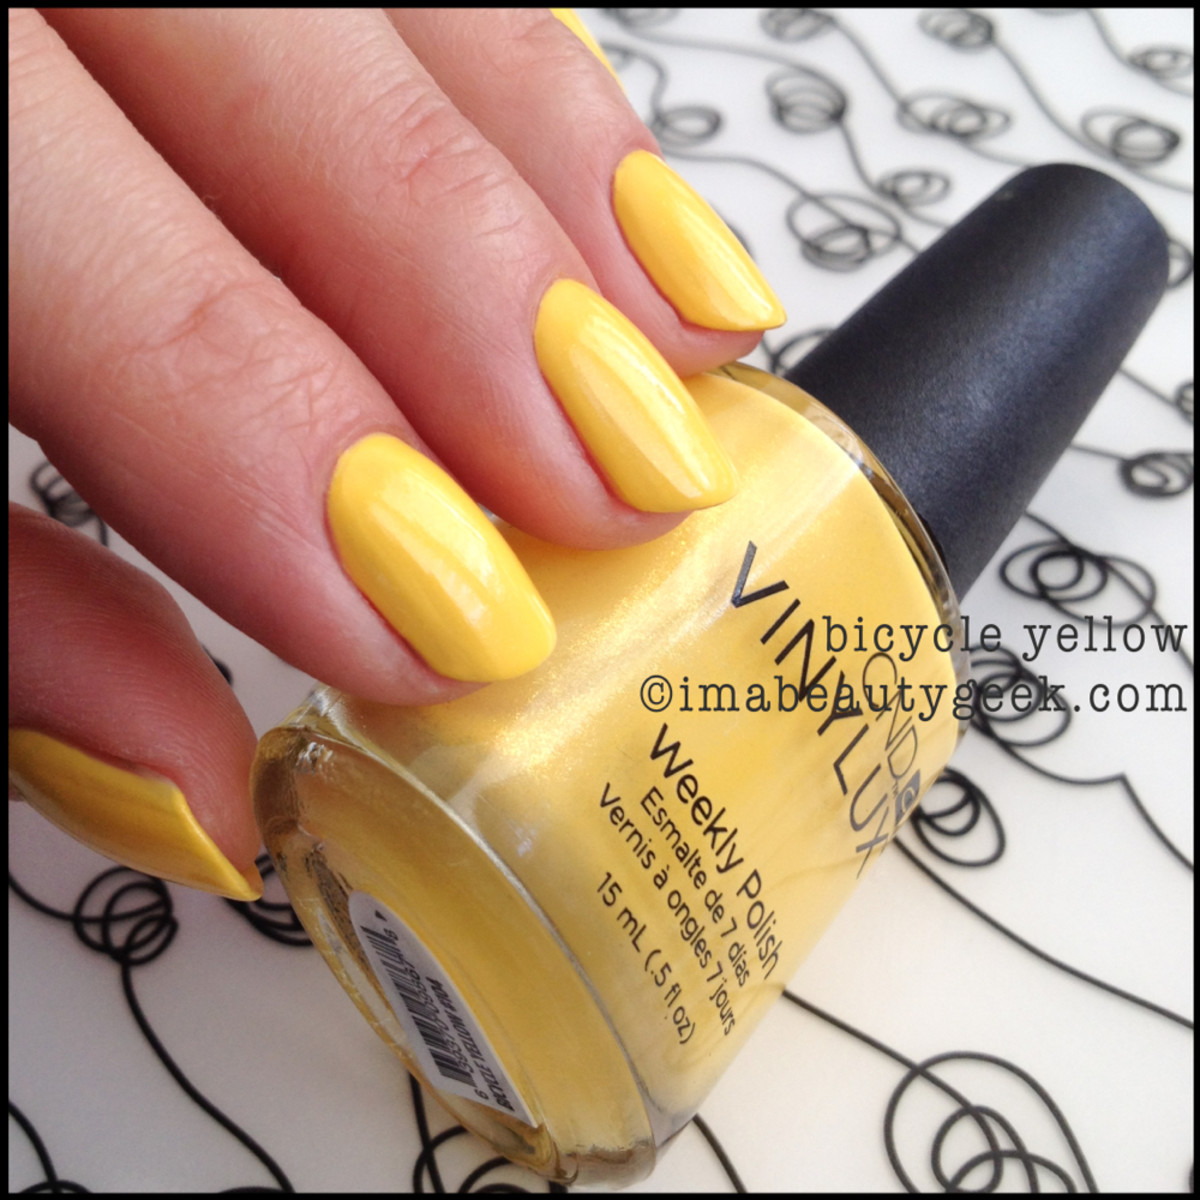 CND vinylux Bicycle Yellow paradise_cnd vinylux summer 2014